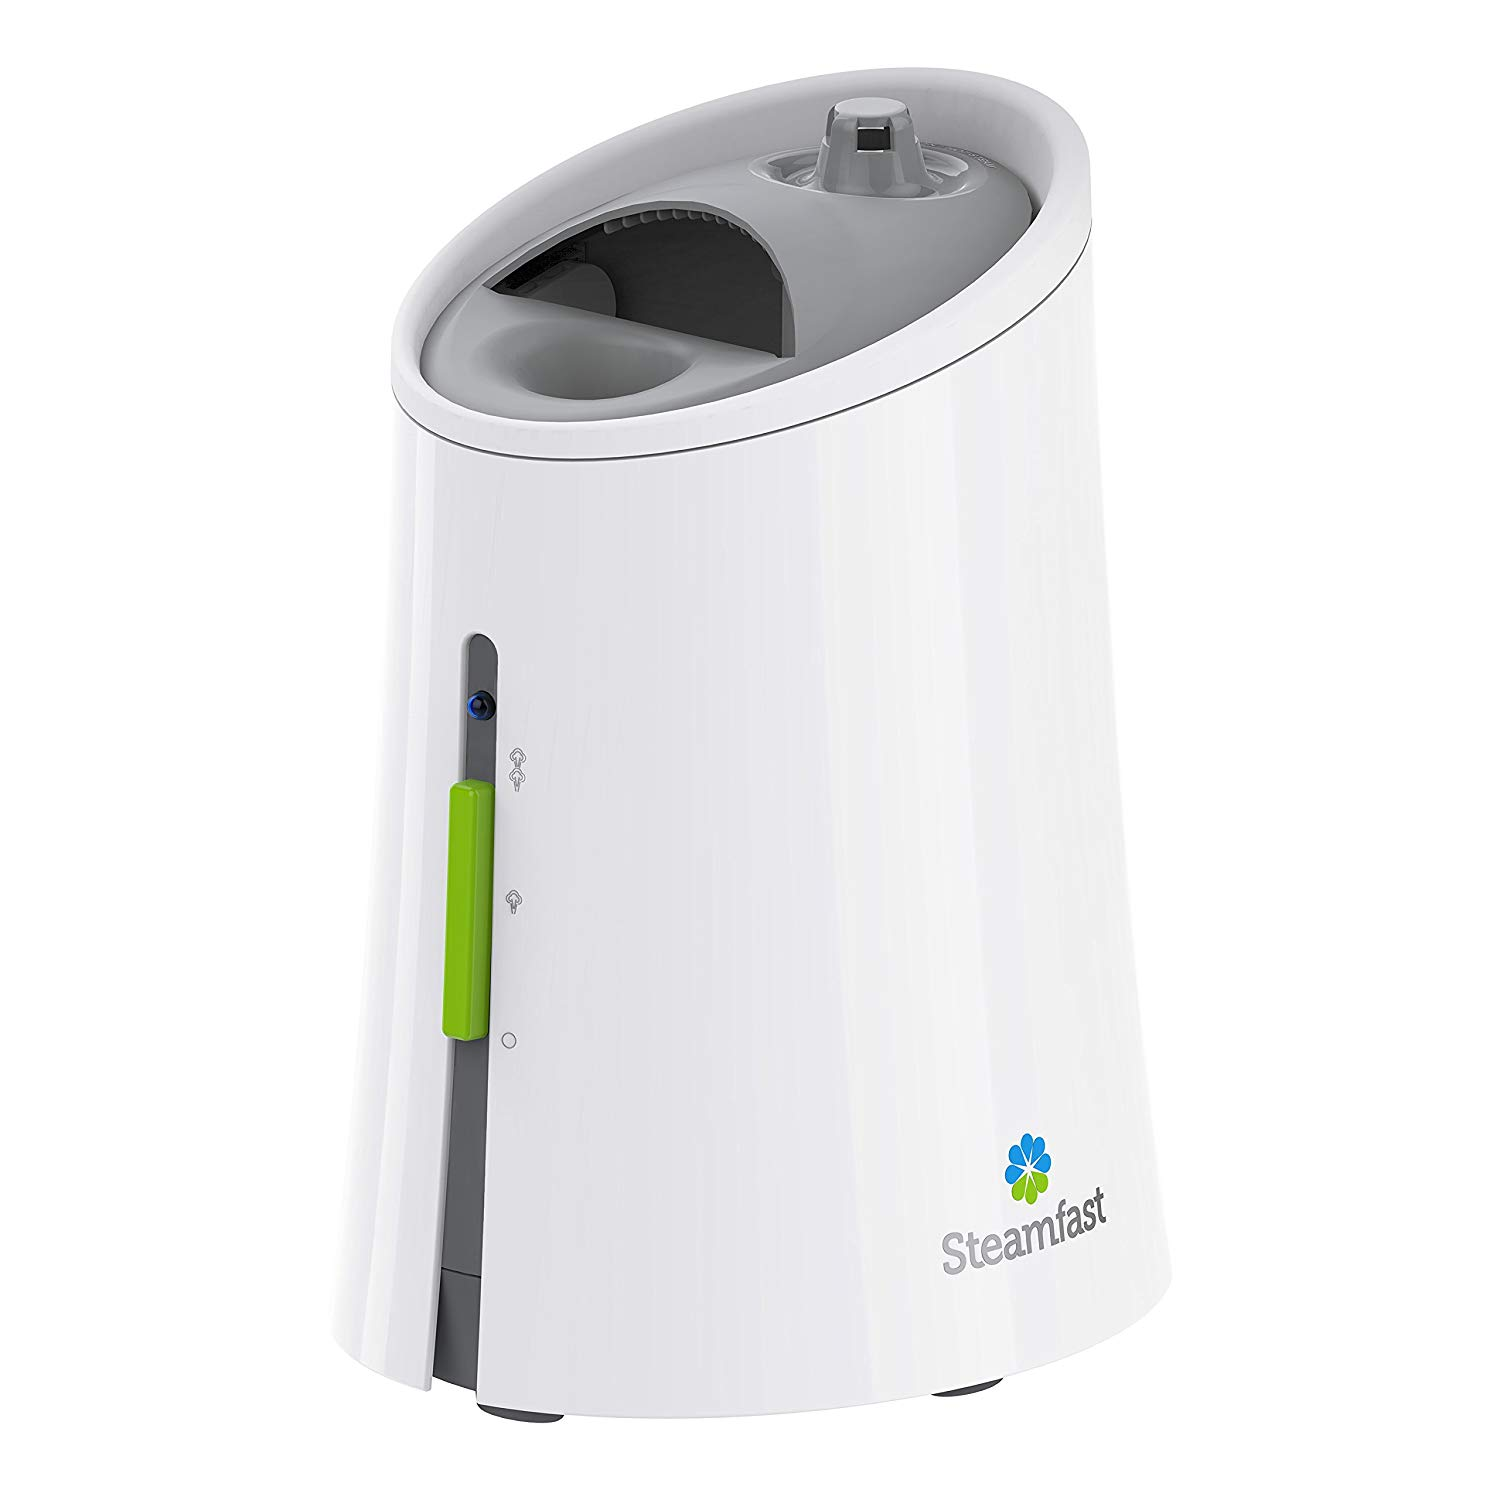 Steamfast SF-920 Warm Mist Best Humidifier Review by www.snoremagazine.com